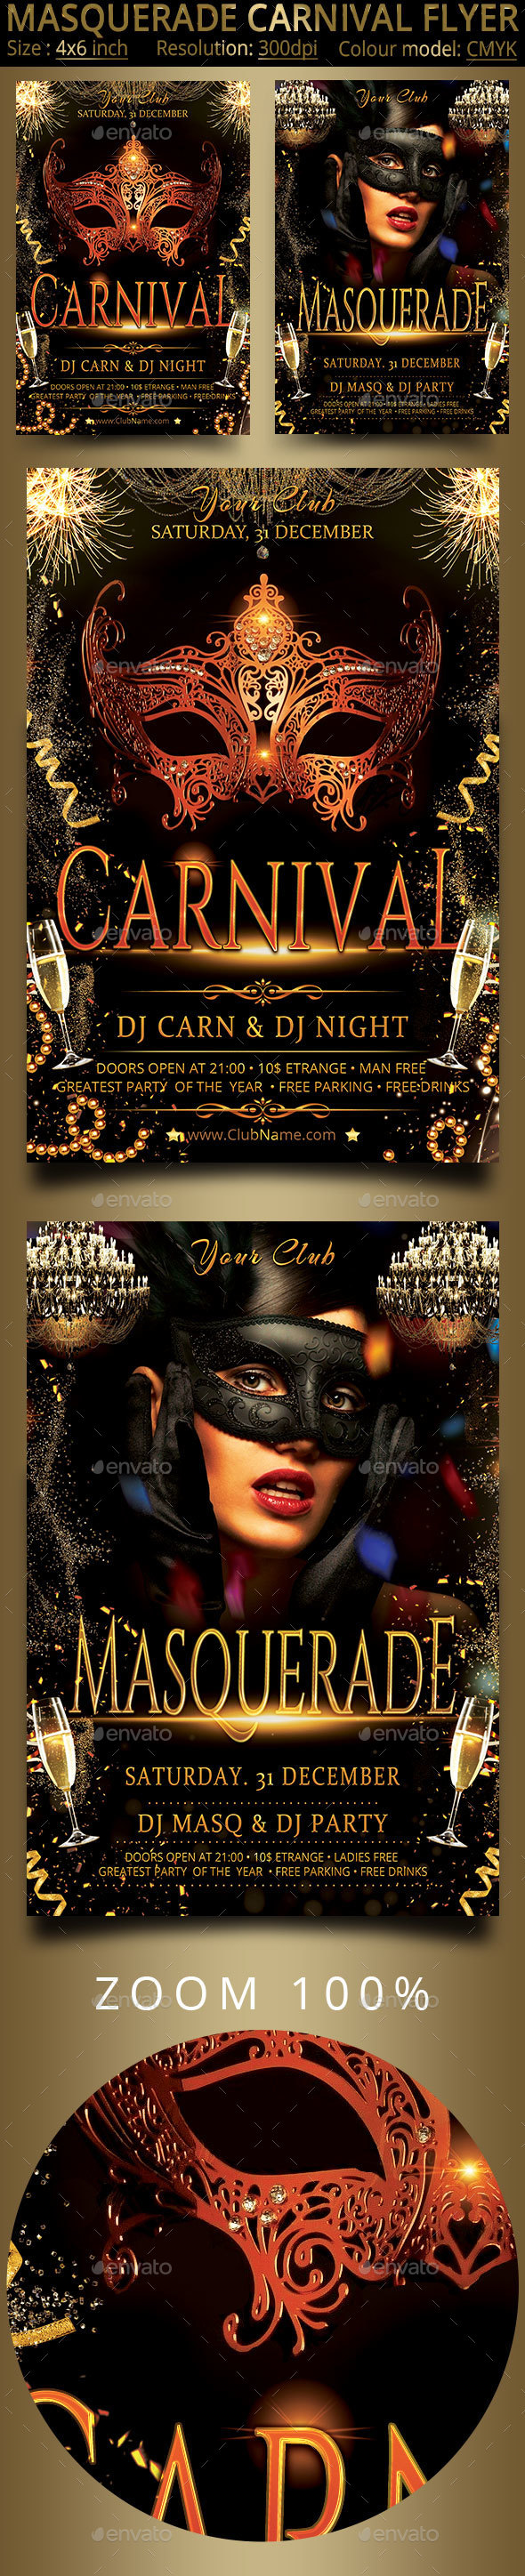 Carnival Masquerade Party Flyer - Events Flyers